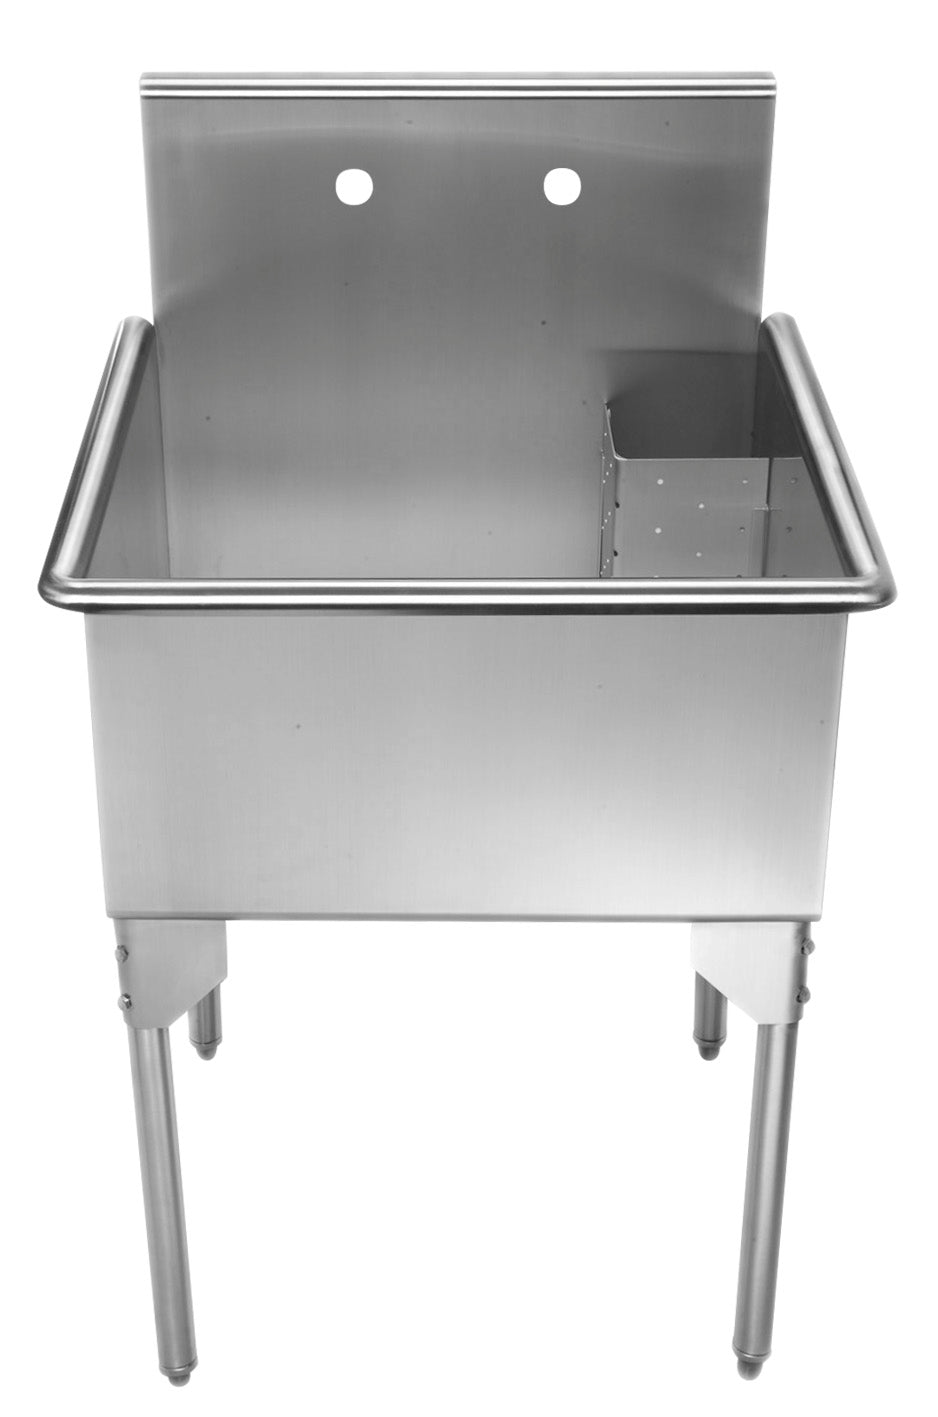 WHITEHAUSE WHLS2424-NP Pearlhaus Brushed Stainless Steel Square, Single Bowl Commerical Freestanding Utility Sink - FaucetMart